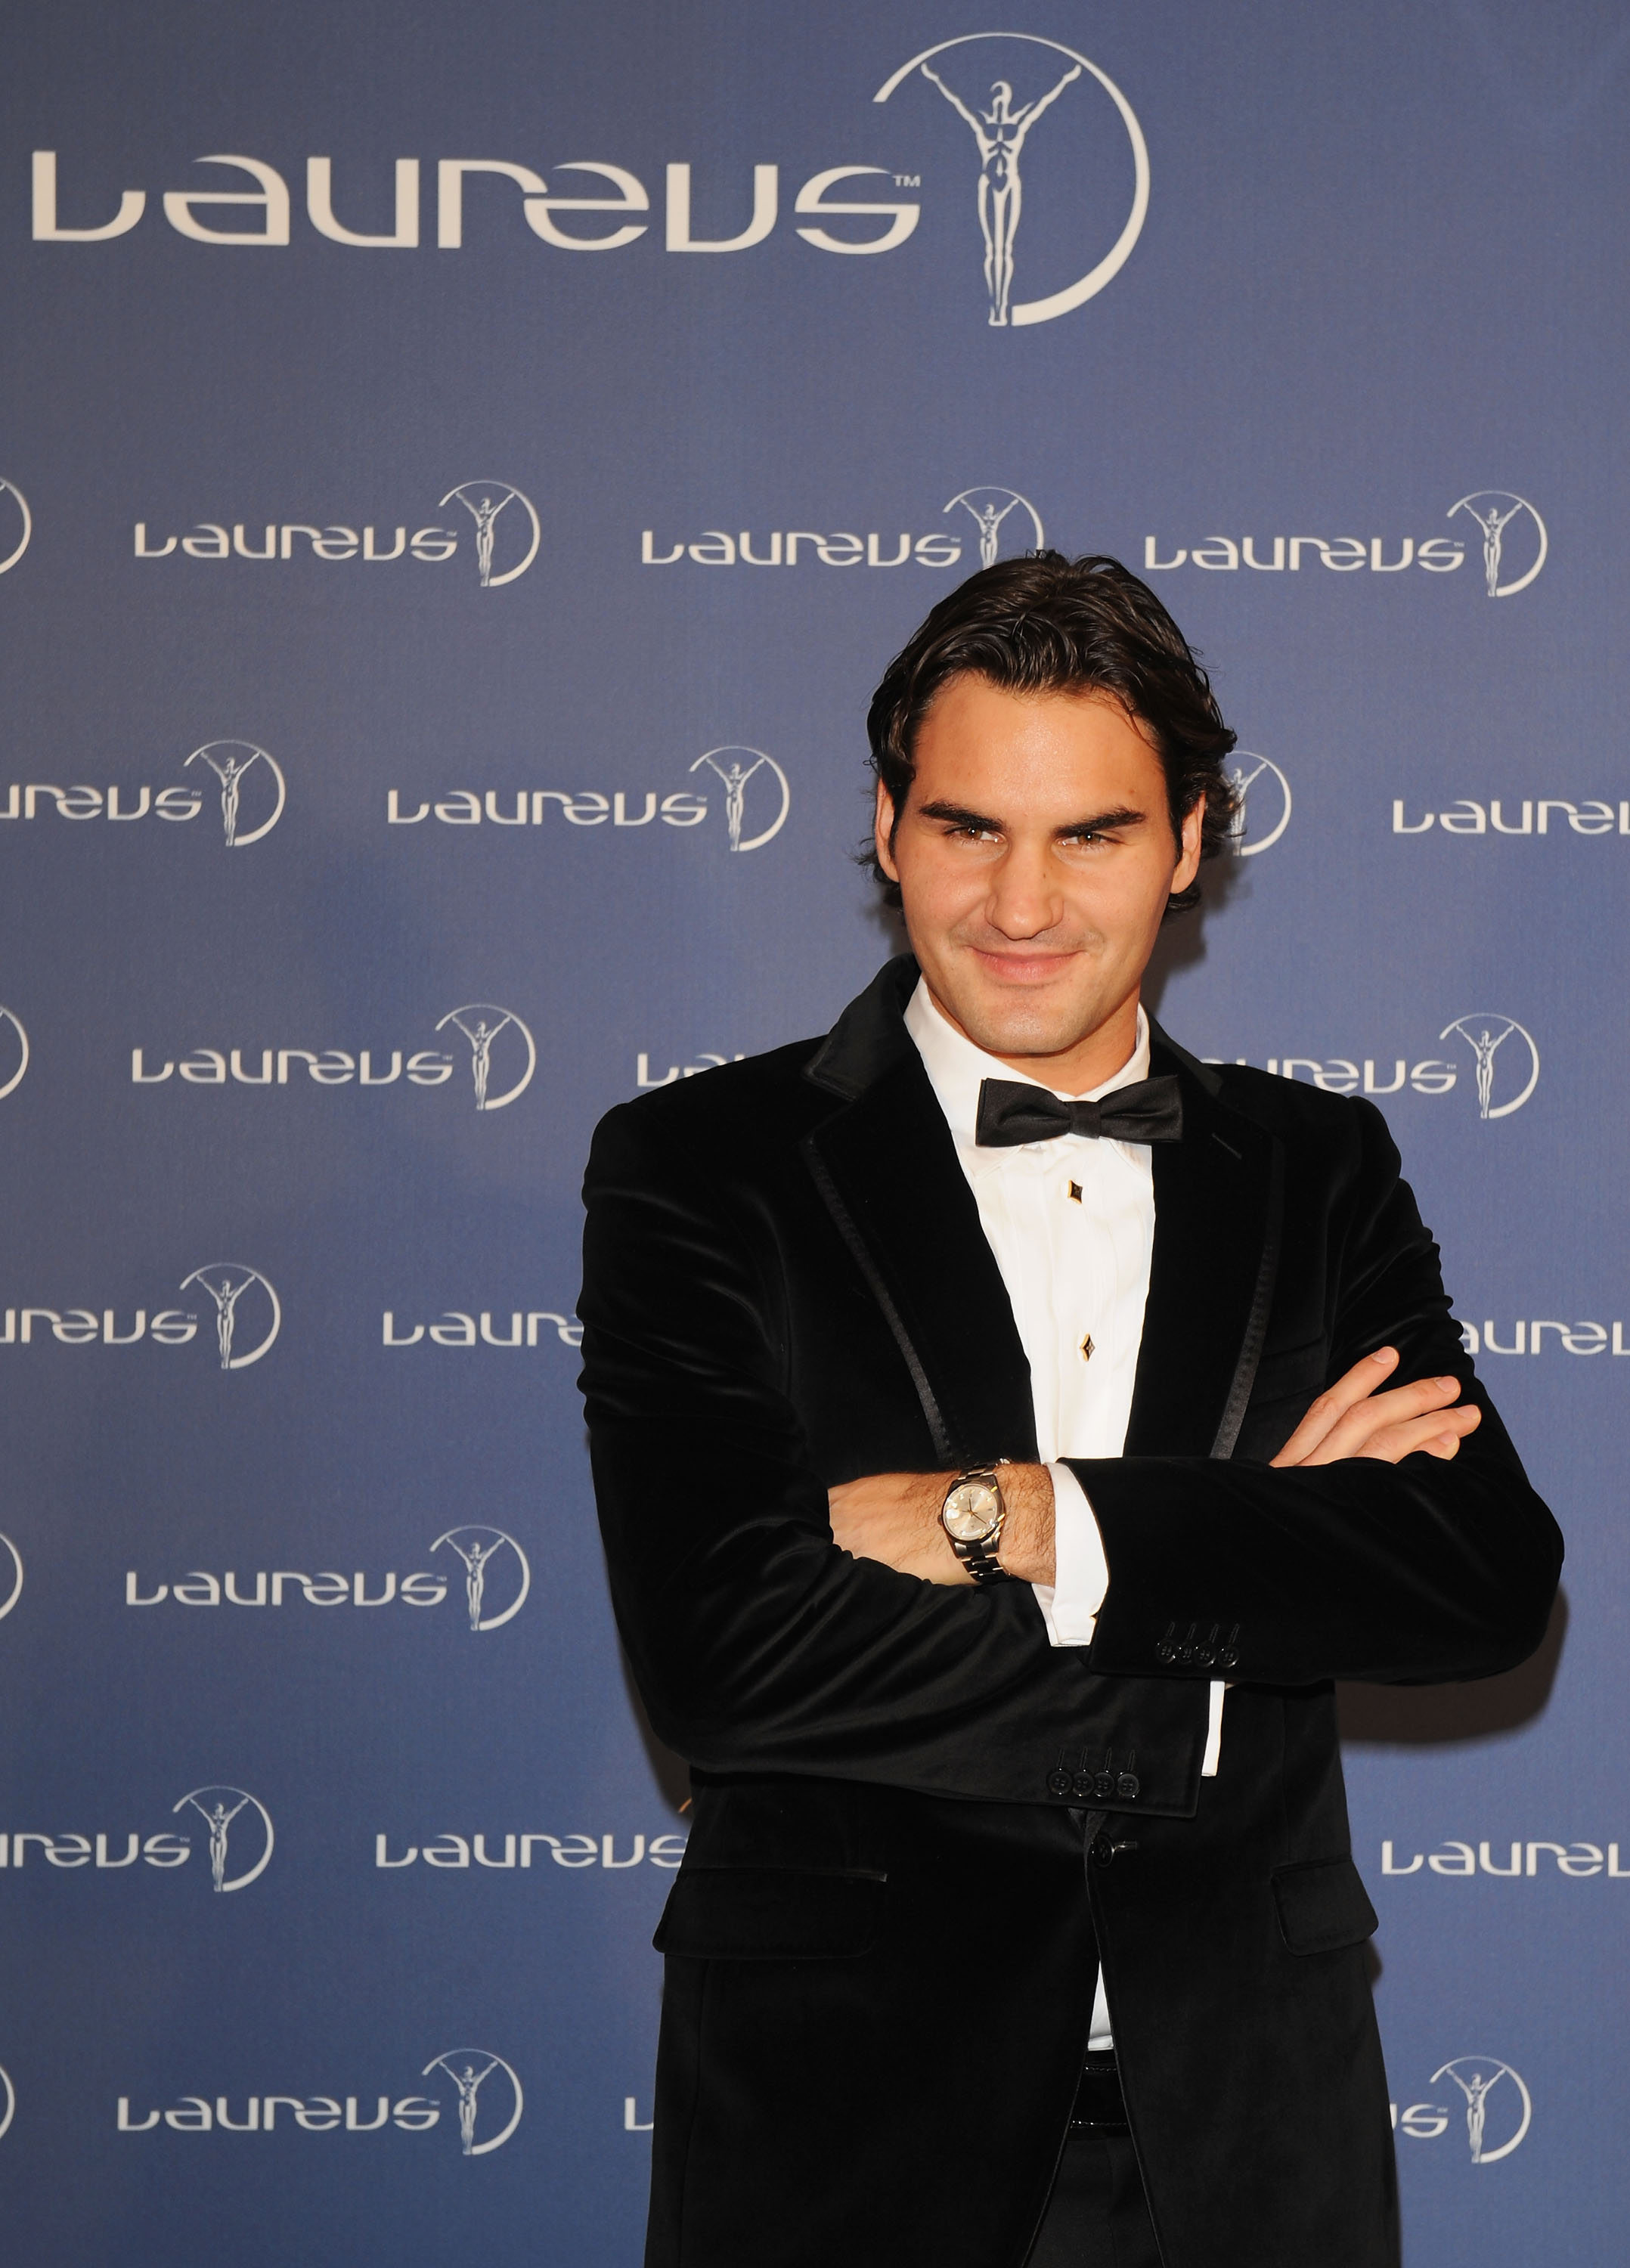 Roger Federer loves making a fashion statement